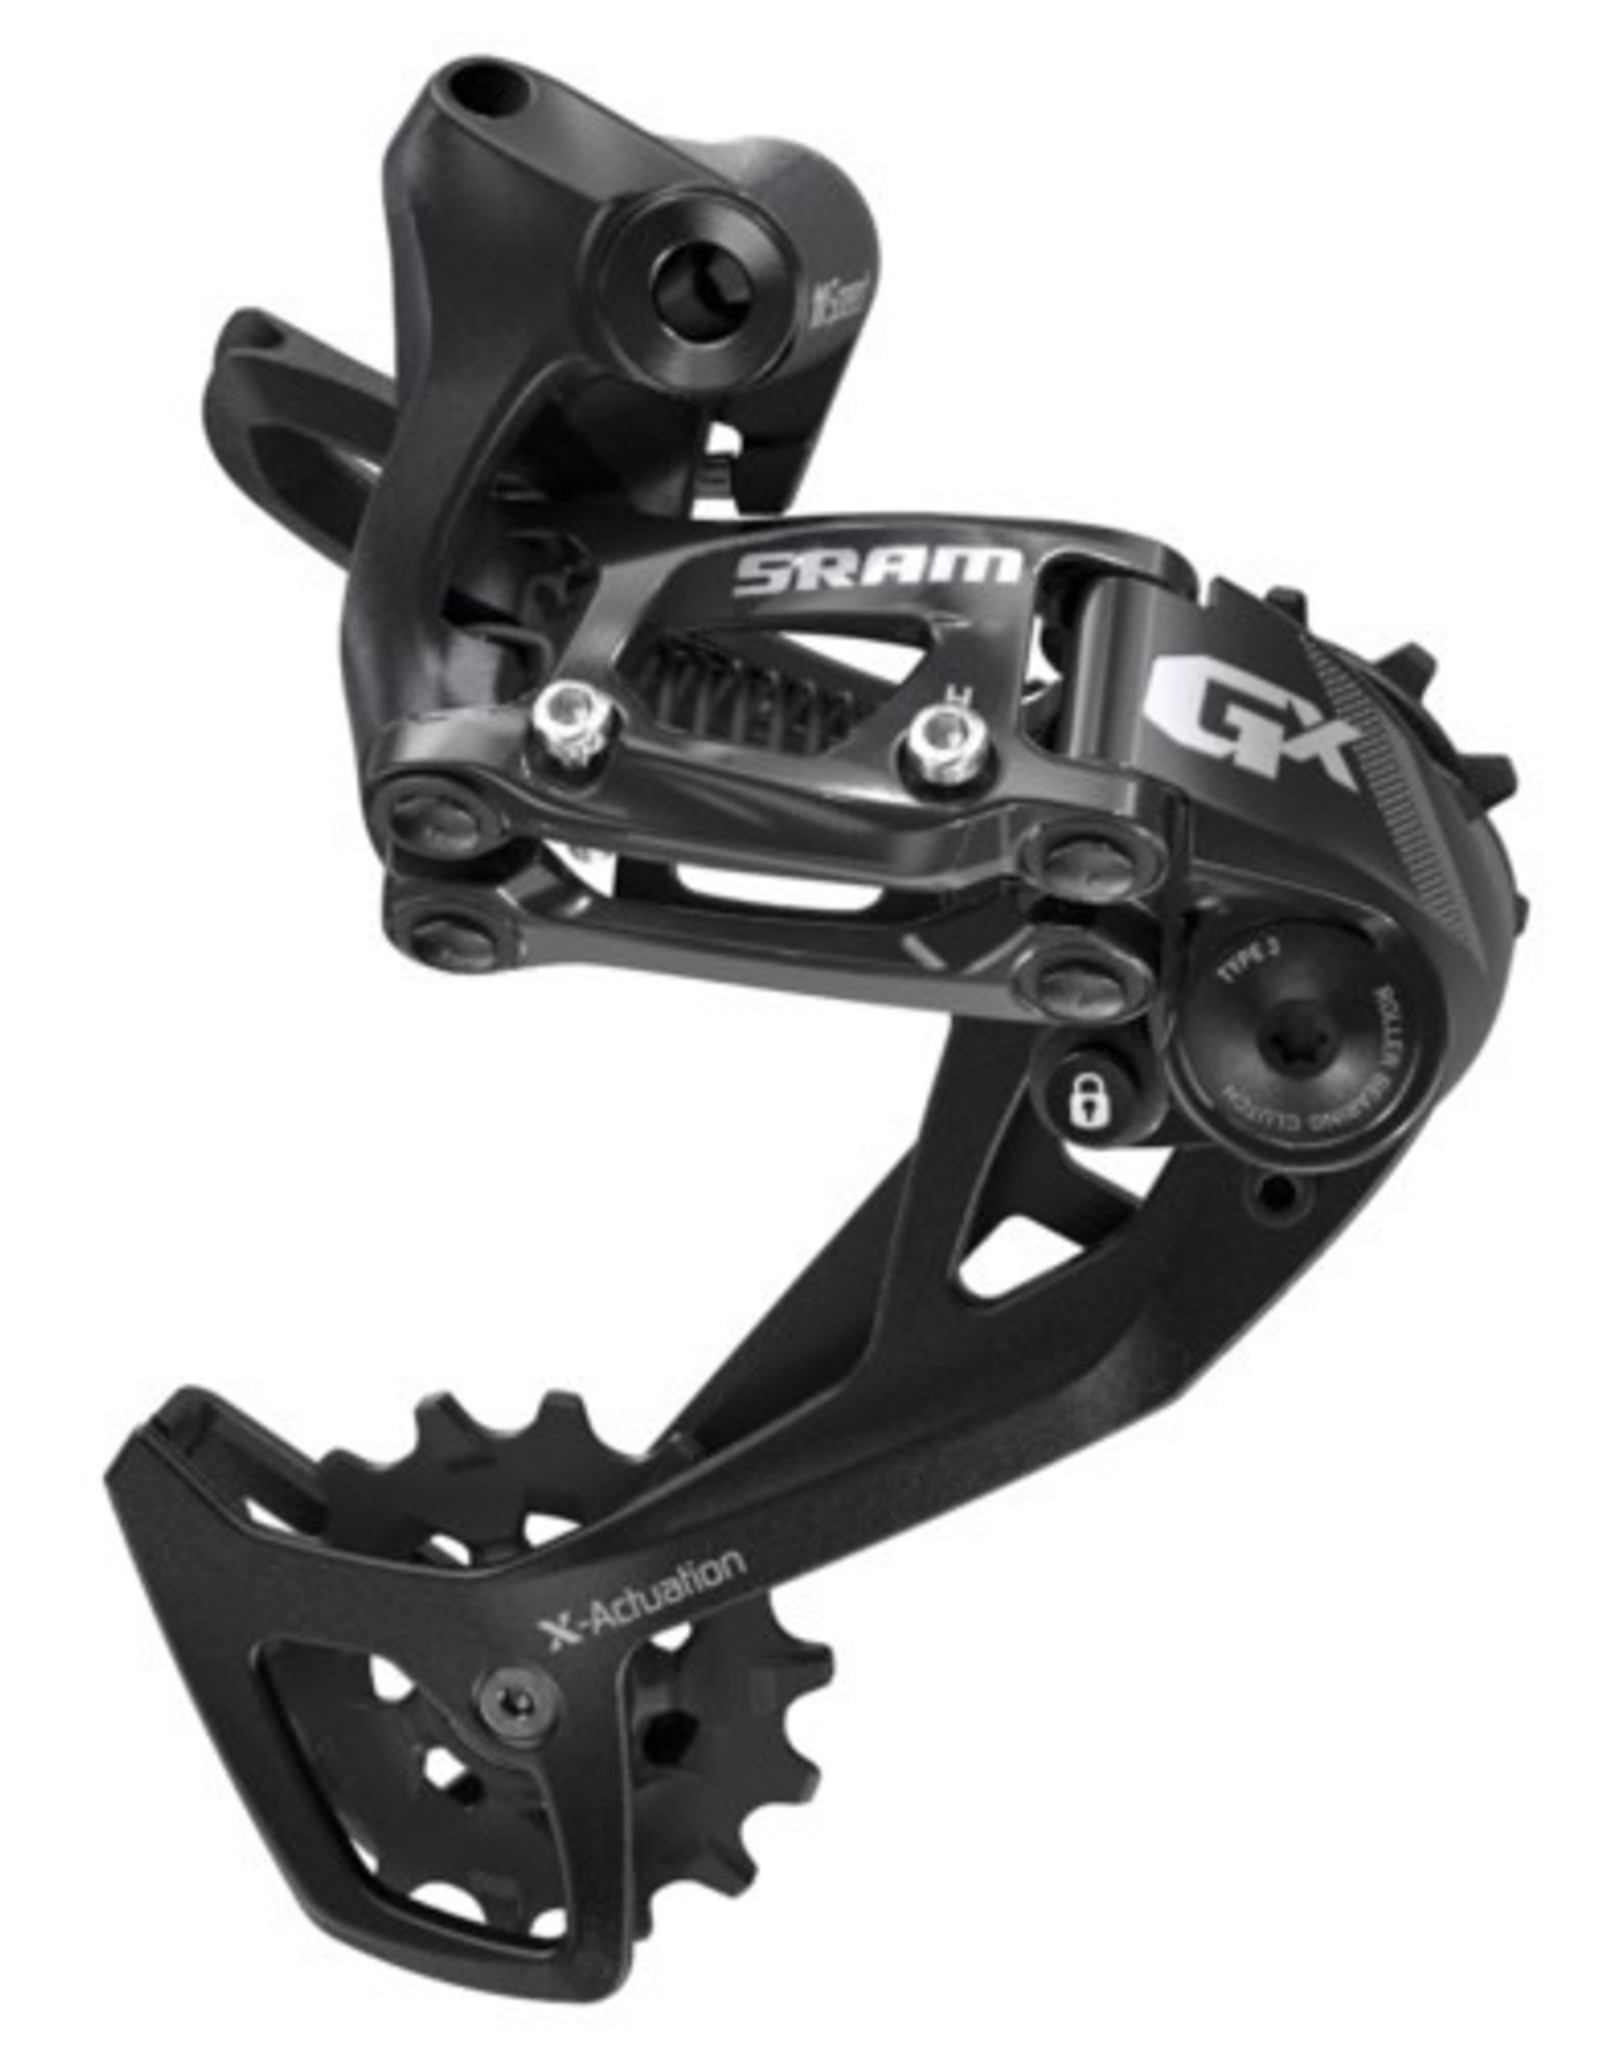 SRAM SRAM GX Rear Derailleur - 11 Speed, Long Cage, Black, 2x, With Clutch